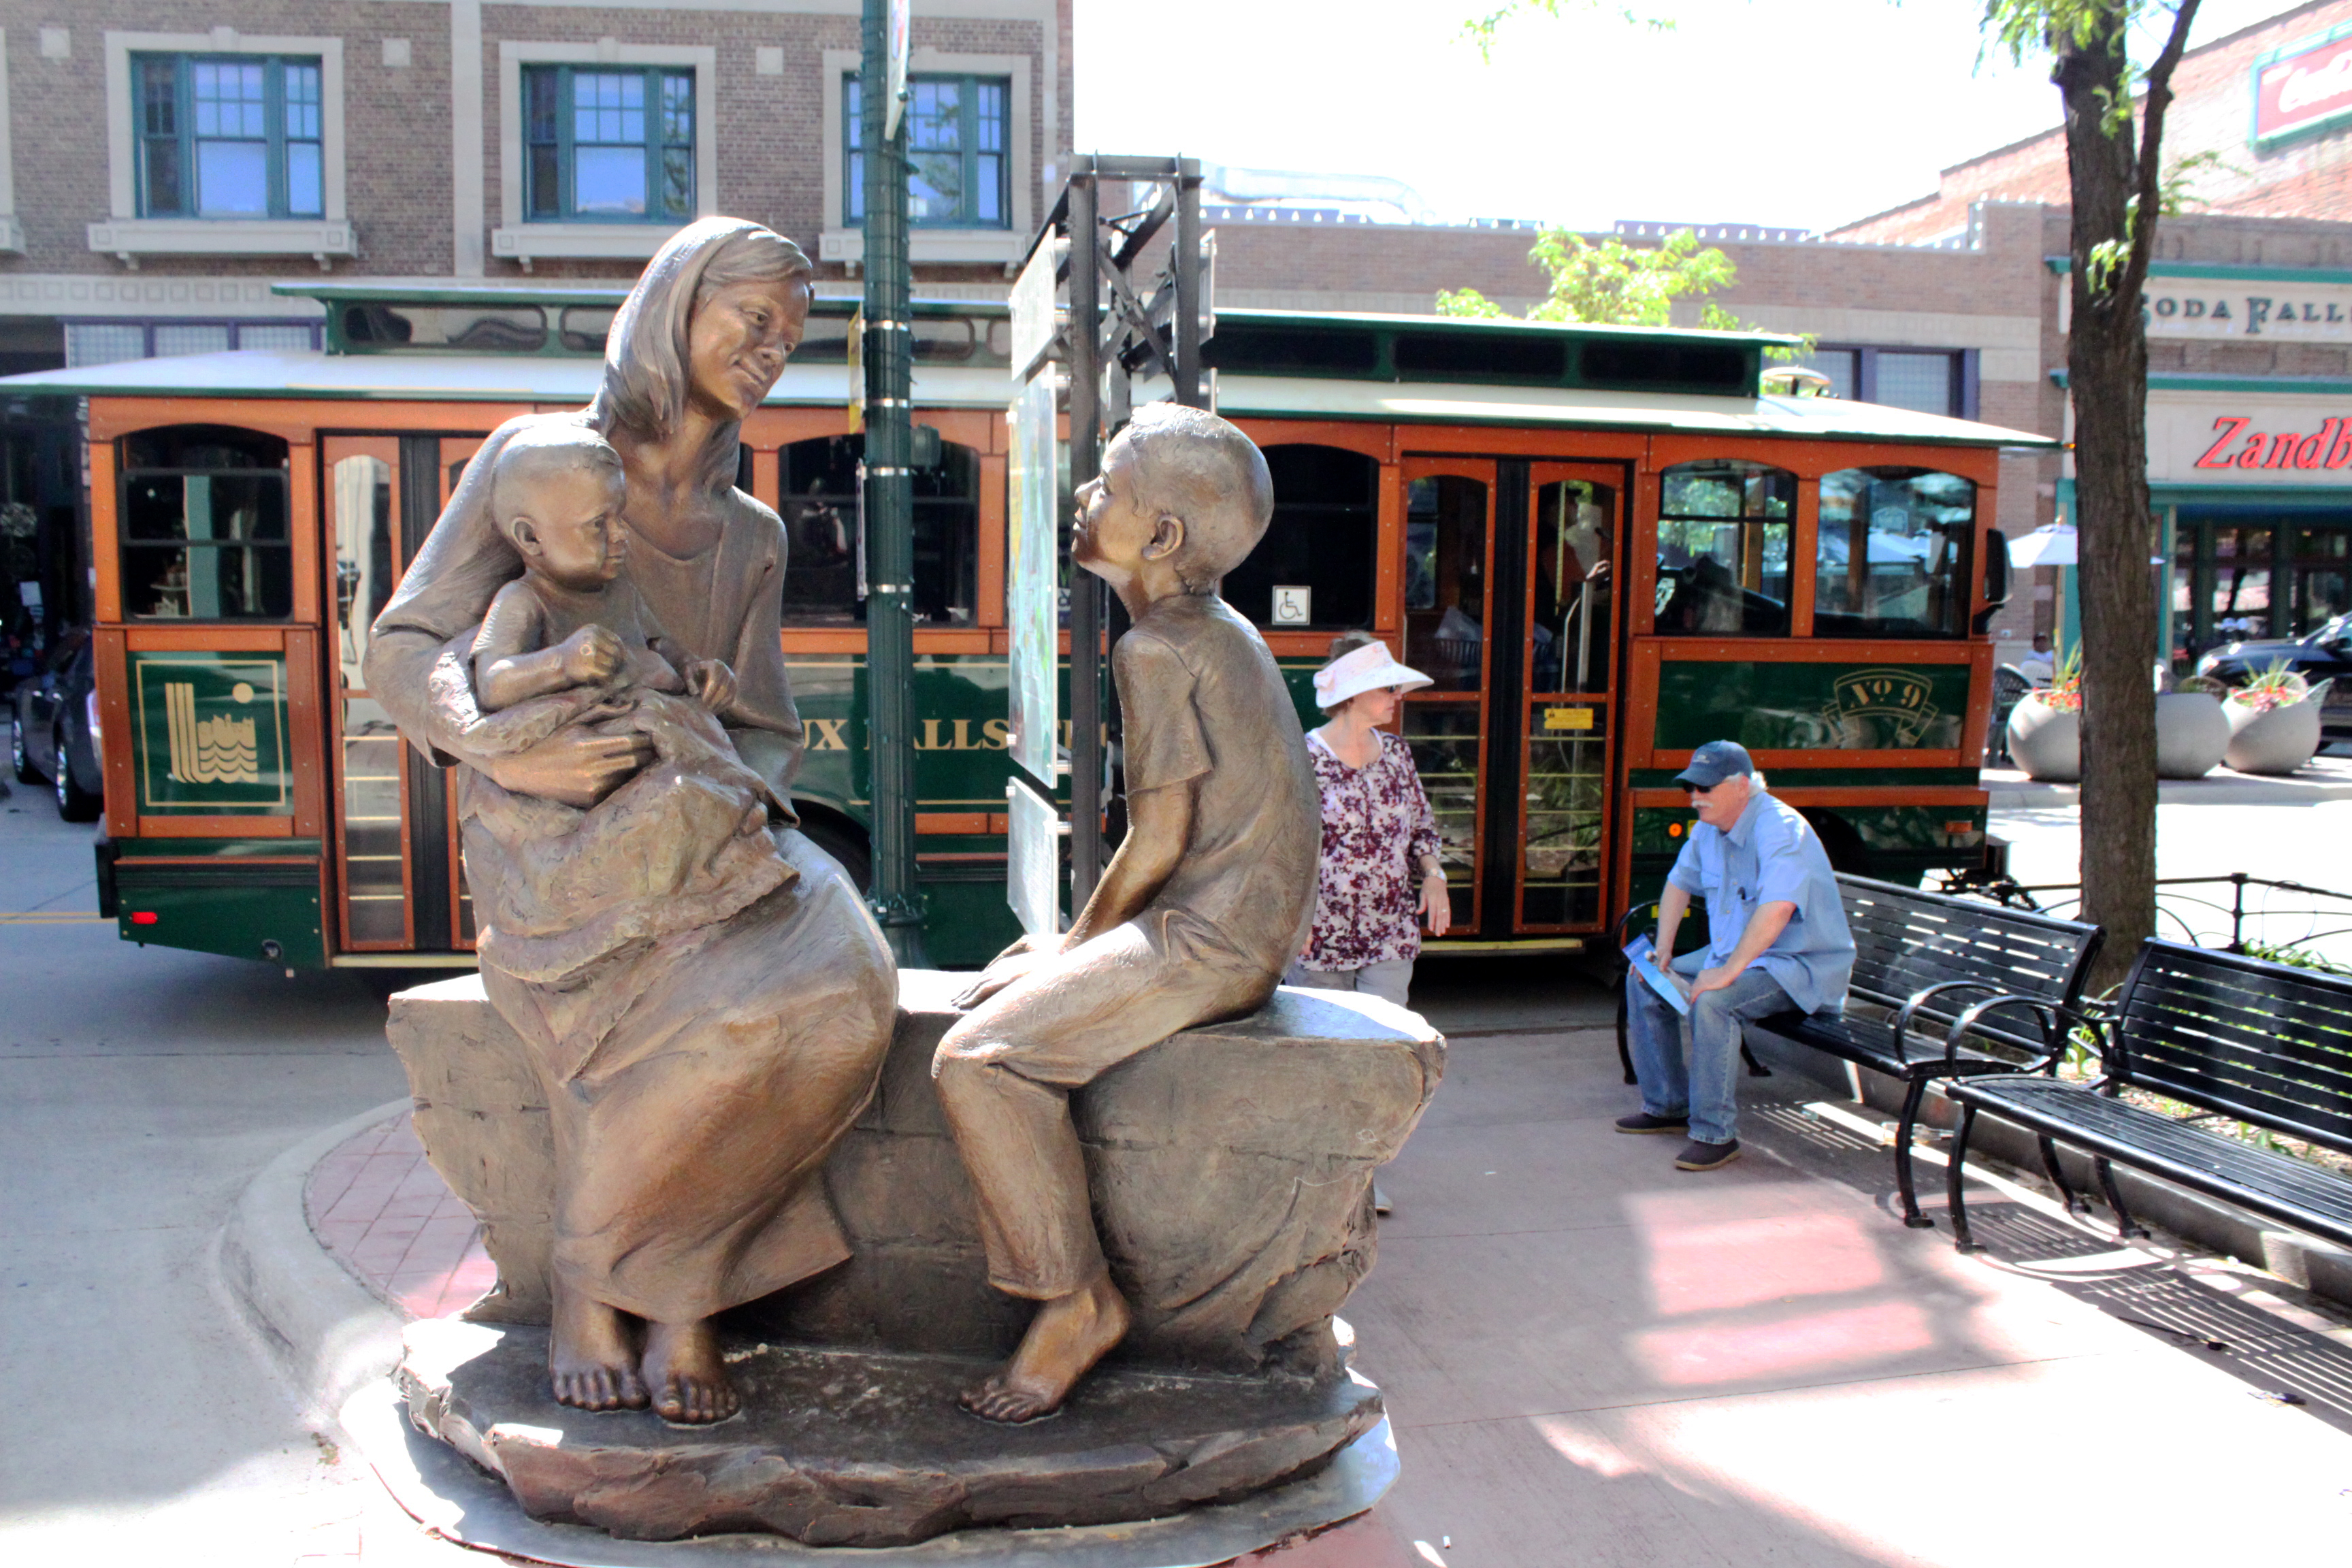 Stroll through Downtown Sioux Falls, home to over 60 sculptures.